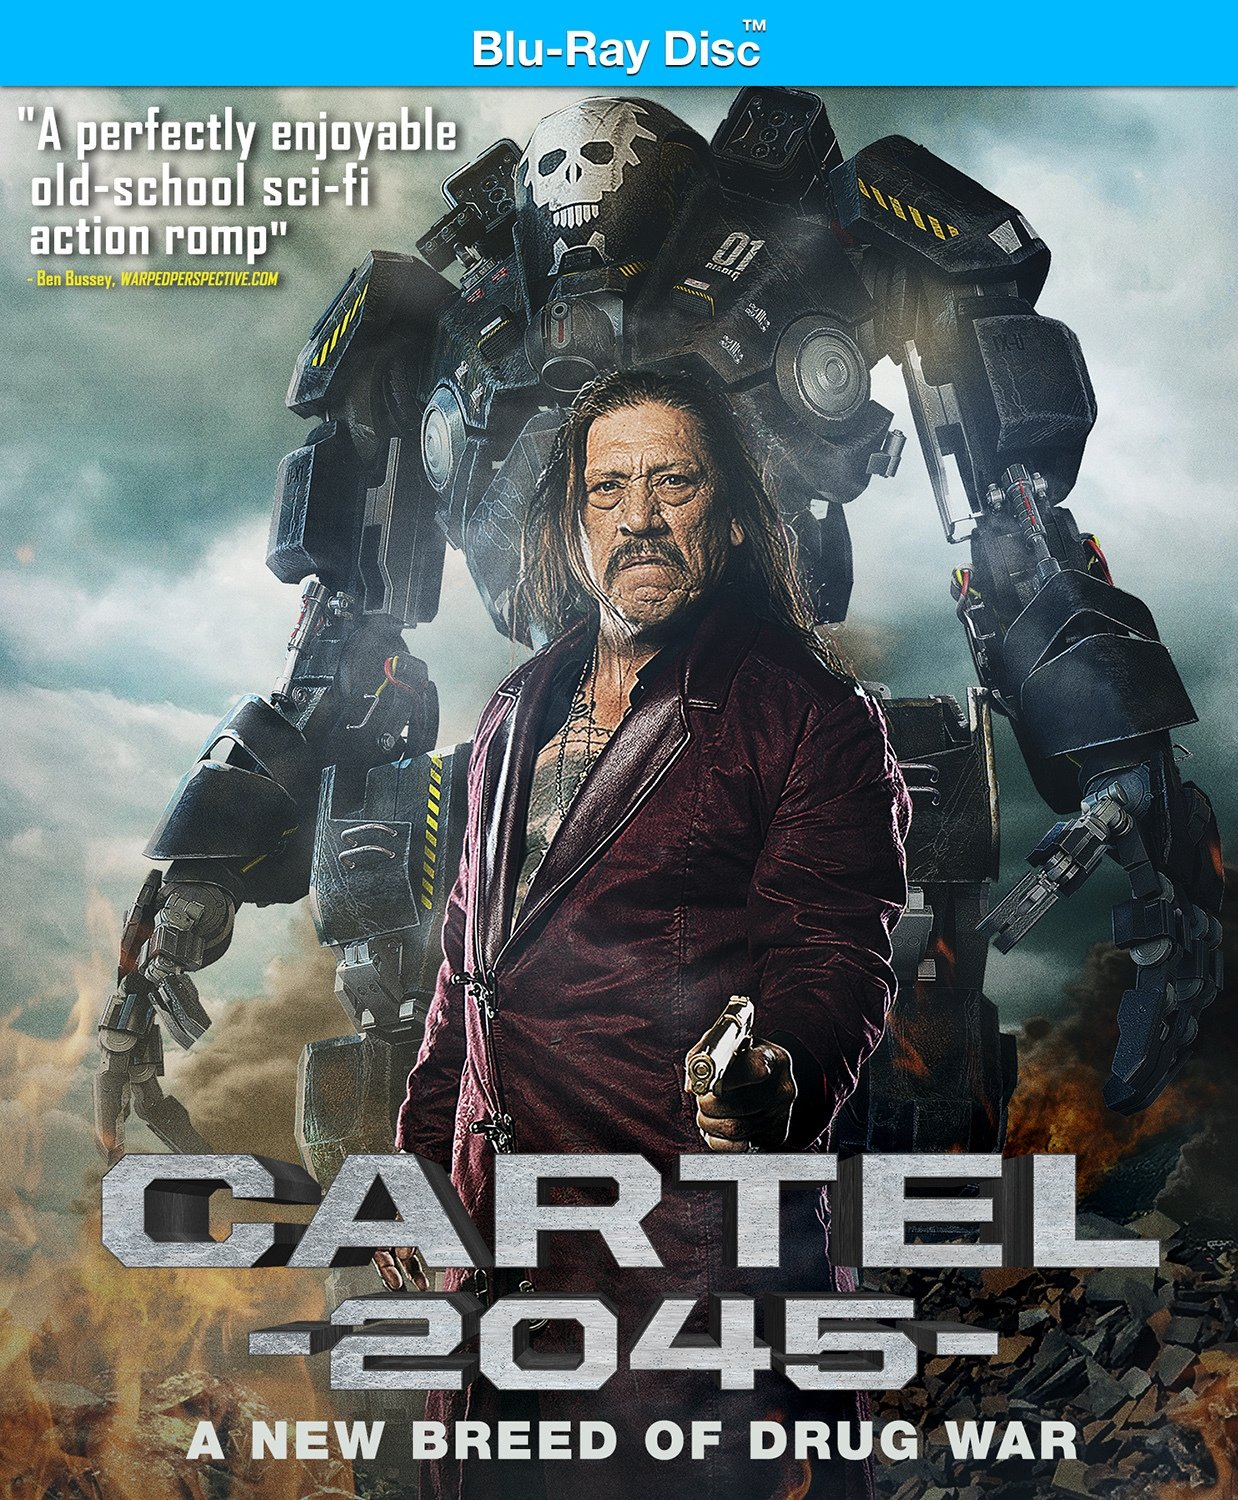 Amazon.com: Cartel 2045 [Blu-ray]: Chris Le, Ramone Garibay ...